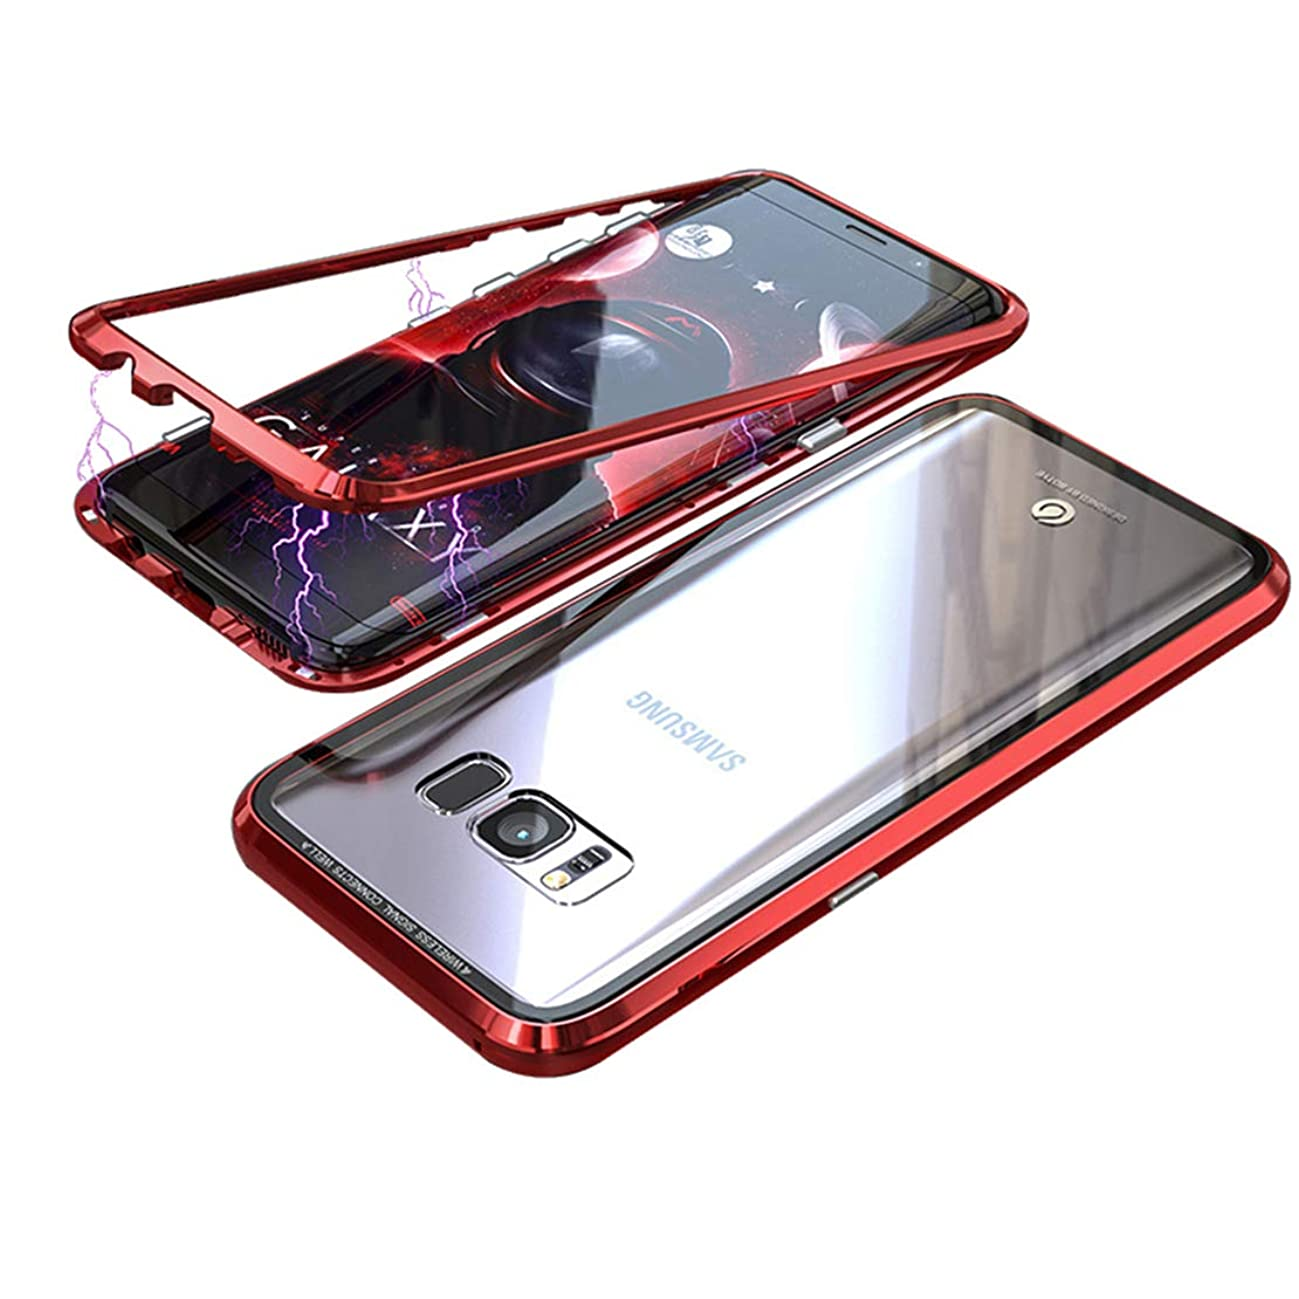 LANYOS Compatible Samsung Galaxy S8 Plus Case, Magnetic Adsorption Metal Frame Clear Tempered Glass Back Cover with Built-in Magnet Flip with a Screen Protector (Red)